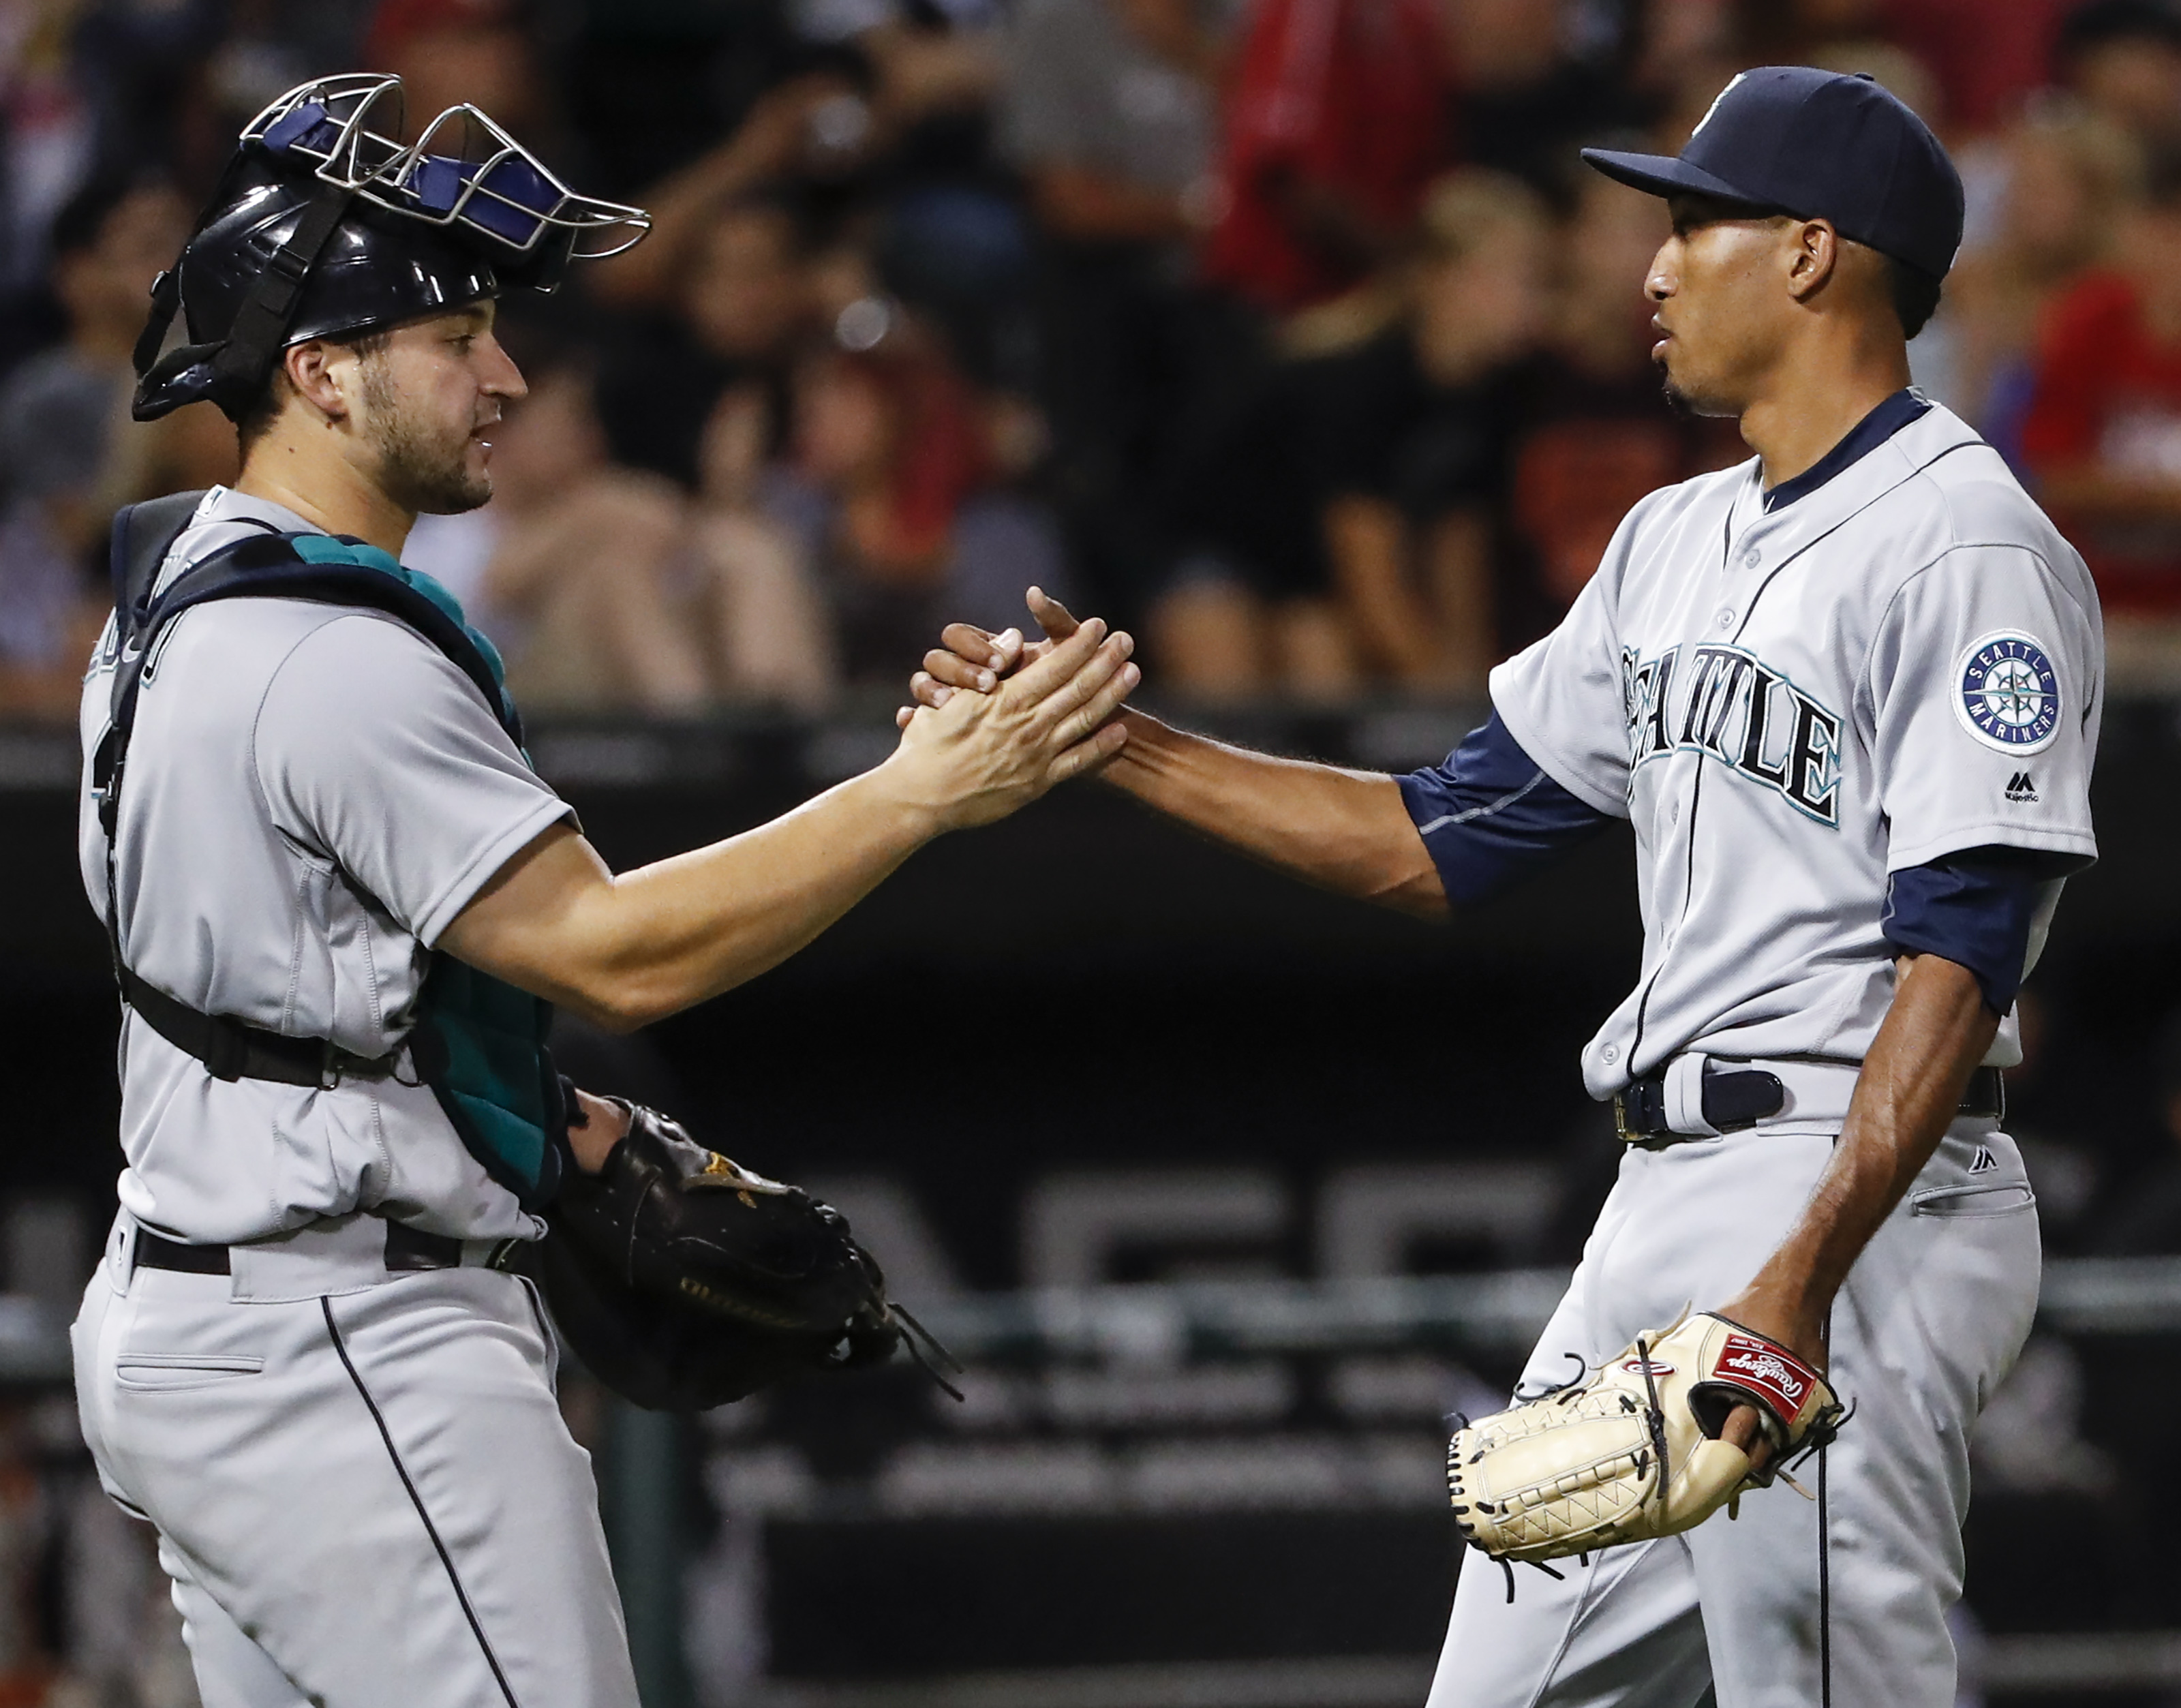 Seattle Mariners' Edwin Diaz, right, and Mike Zunino, left, celebrate a 3-1 win over the Chicago White Sox in a baseball game, Friday, Aug. 26, 2016, in Chicago. (AP Photo/Kamil Krzaczynski)